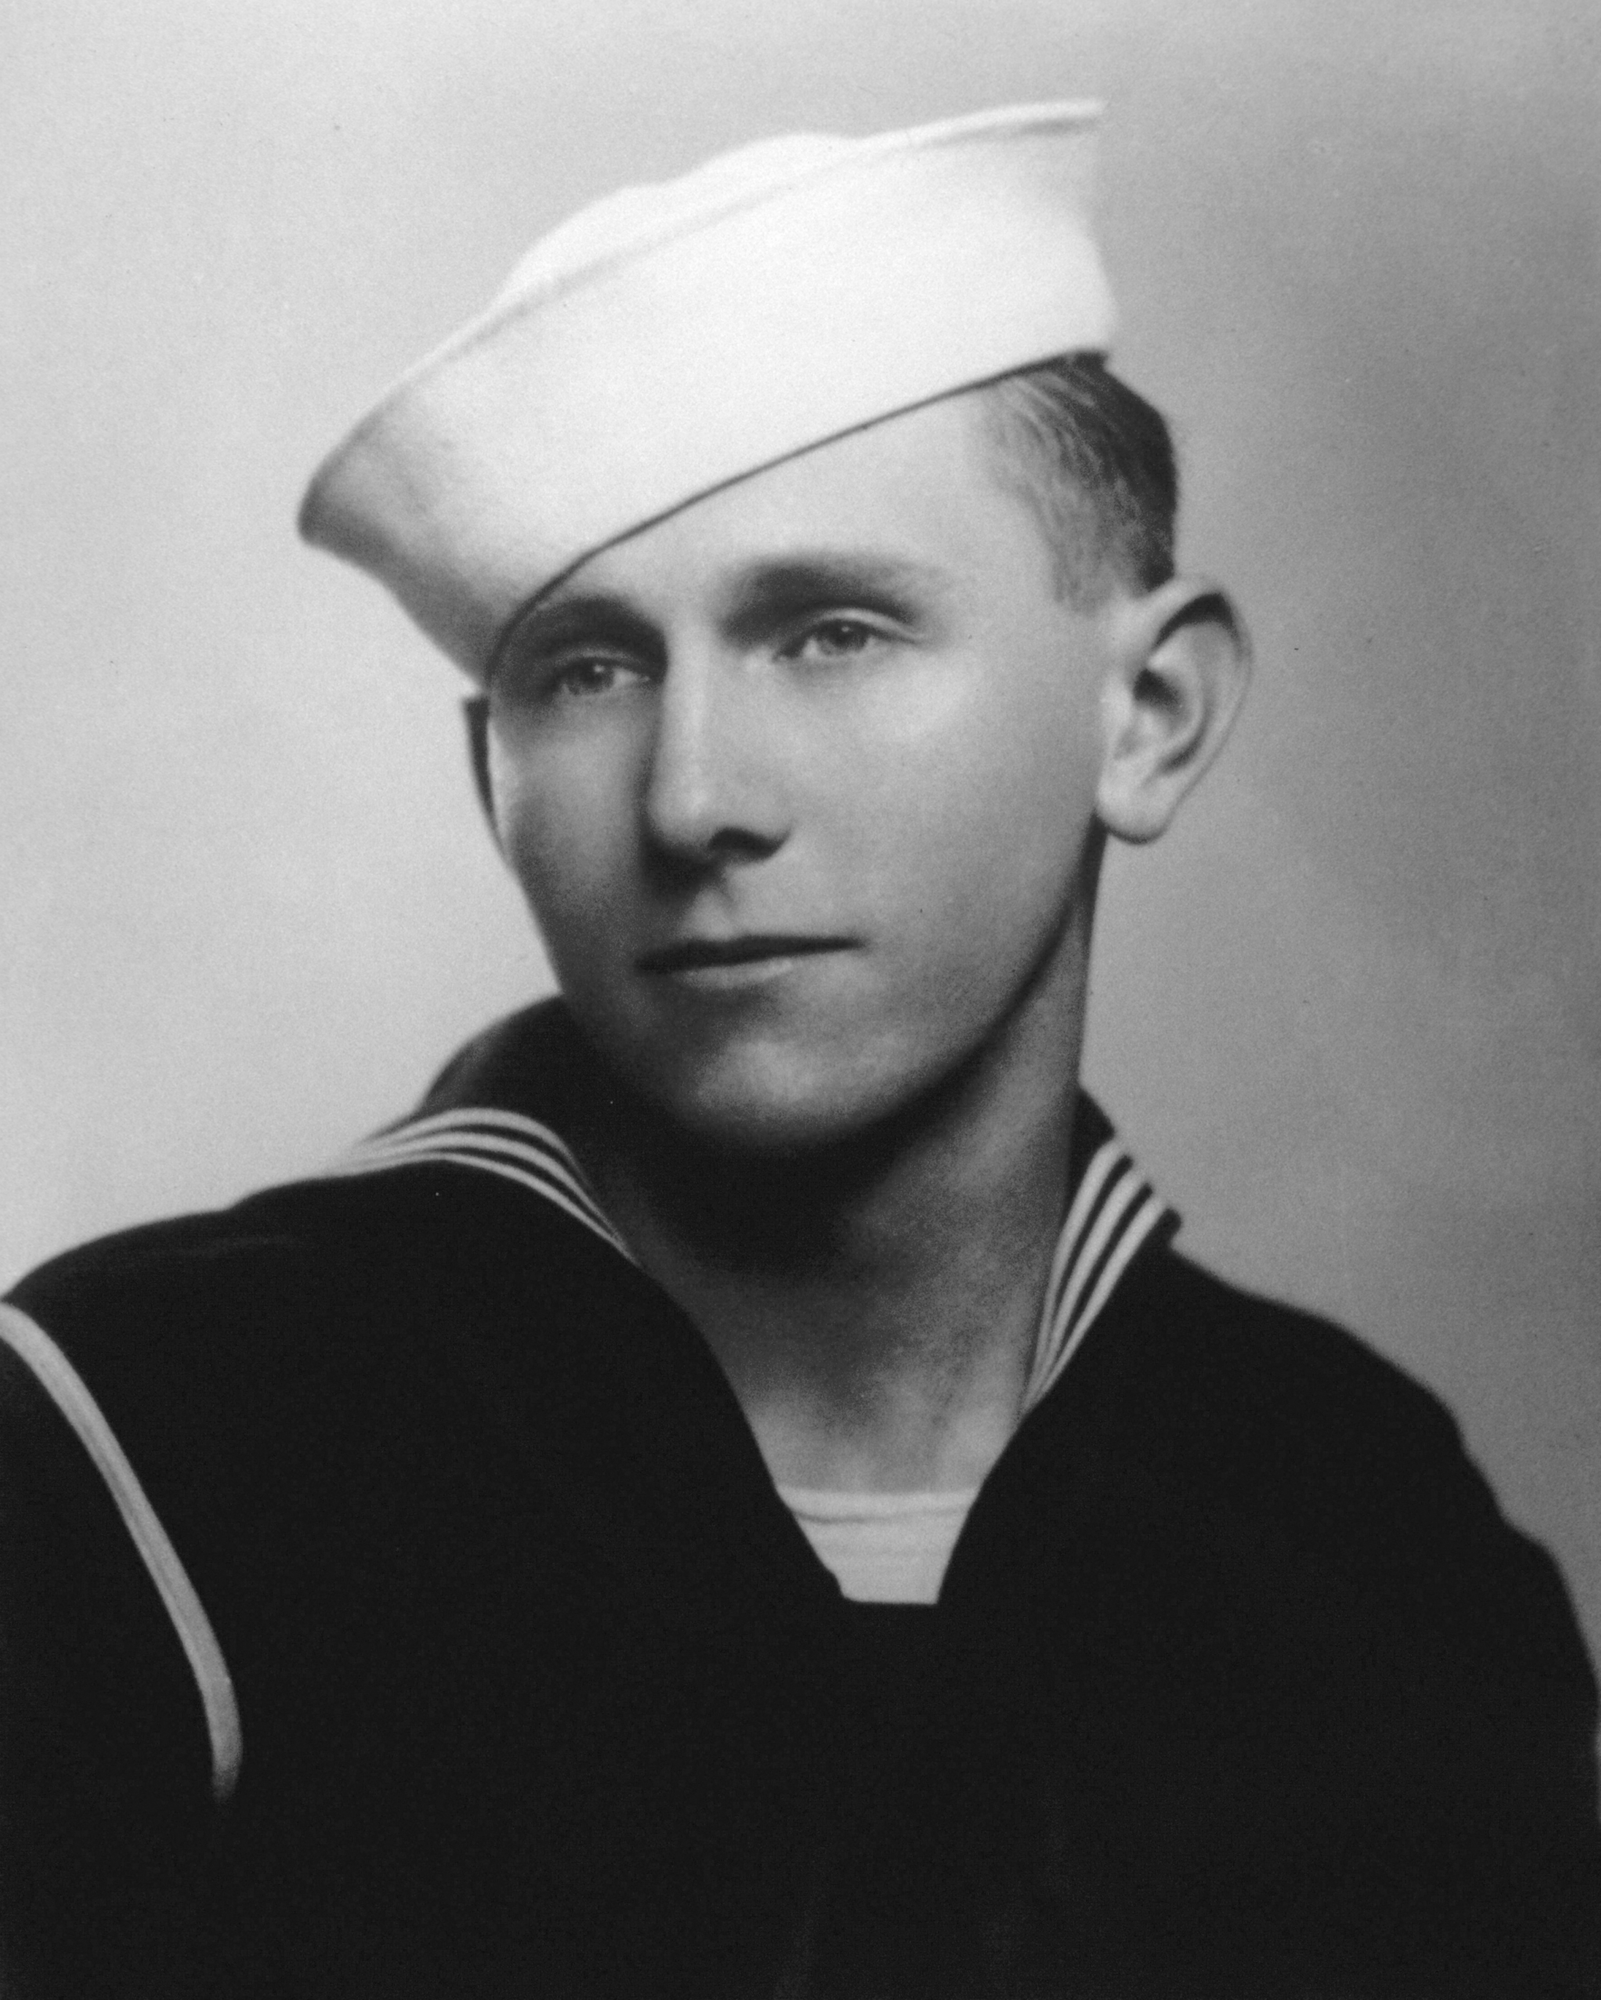 US Coast Guard historian presents personal history of Douglas Munro, exhibits his Medal of Honor for saving Marines at Guadalcanal at National Museum of the Marine Corps